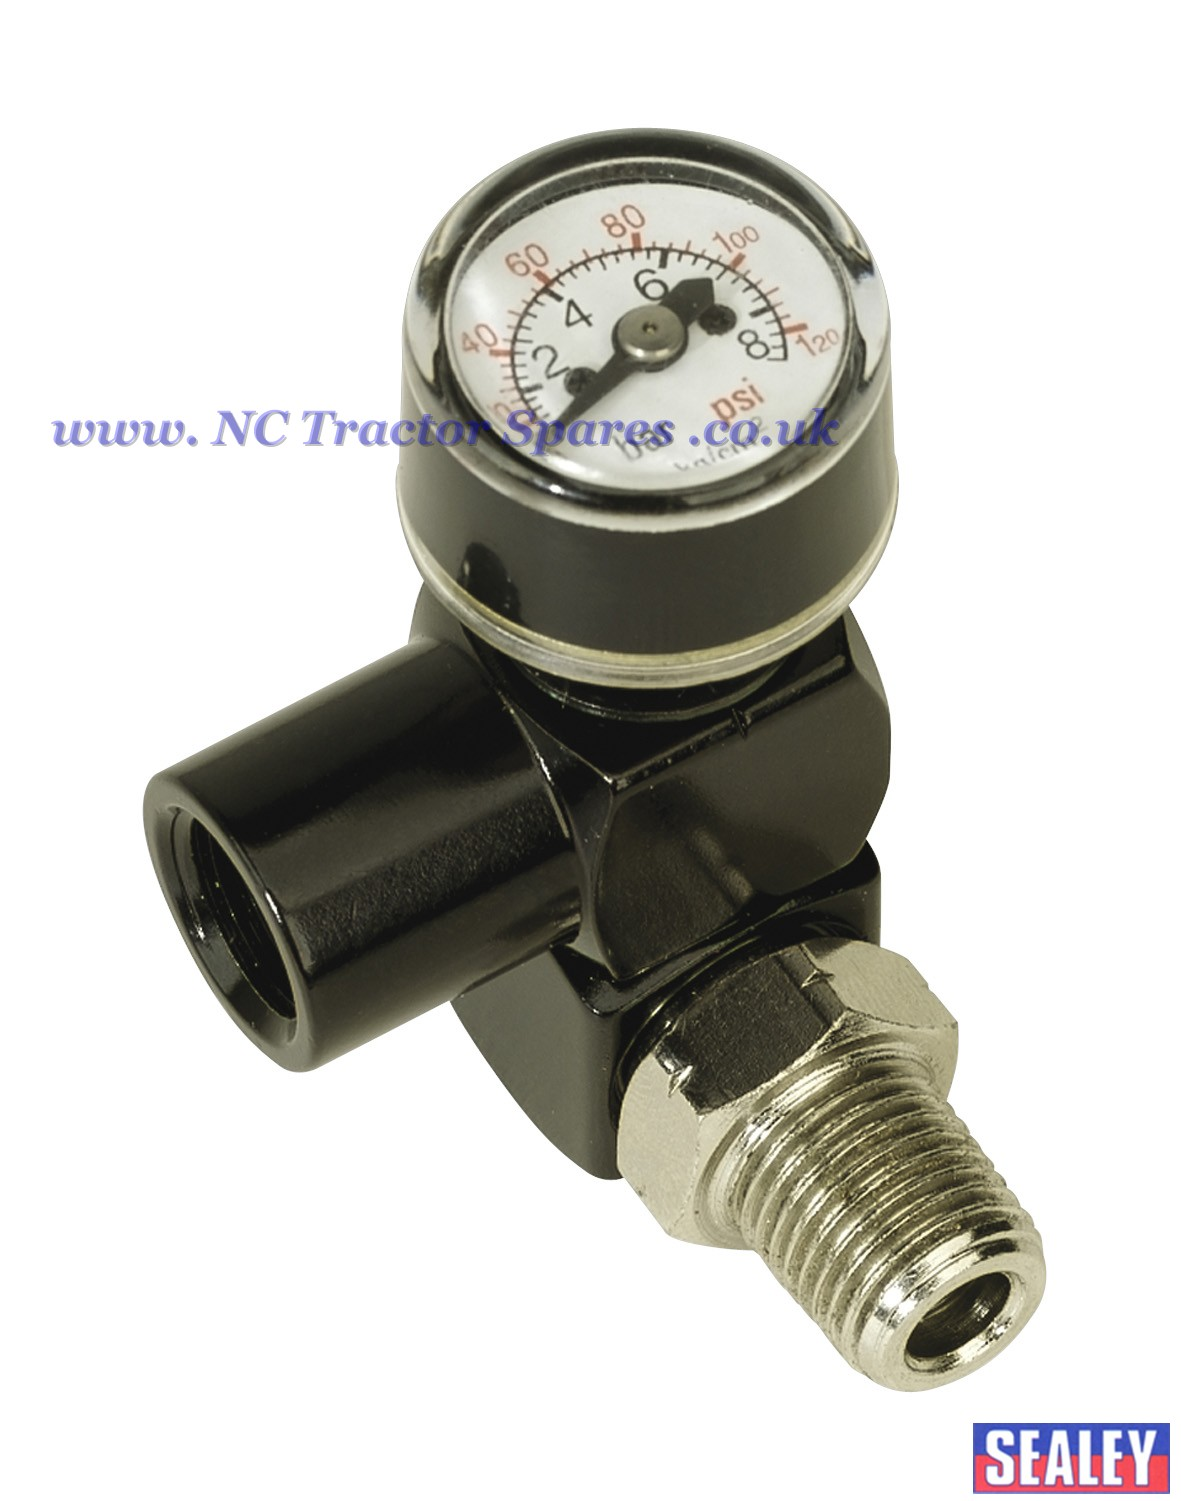 Z swivel air hose connector with pressure gauge bsp